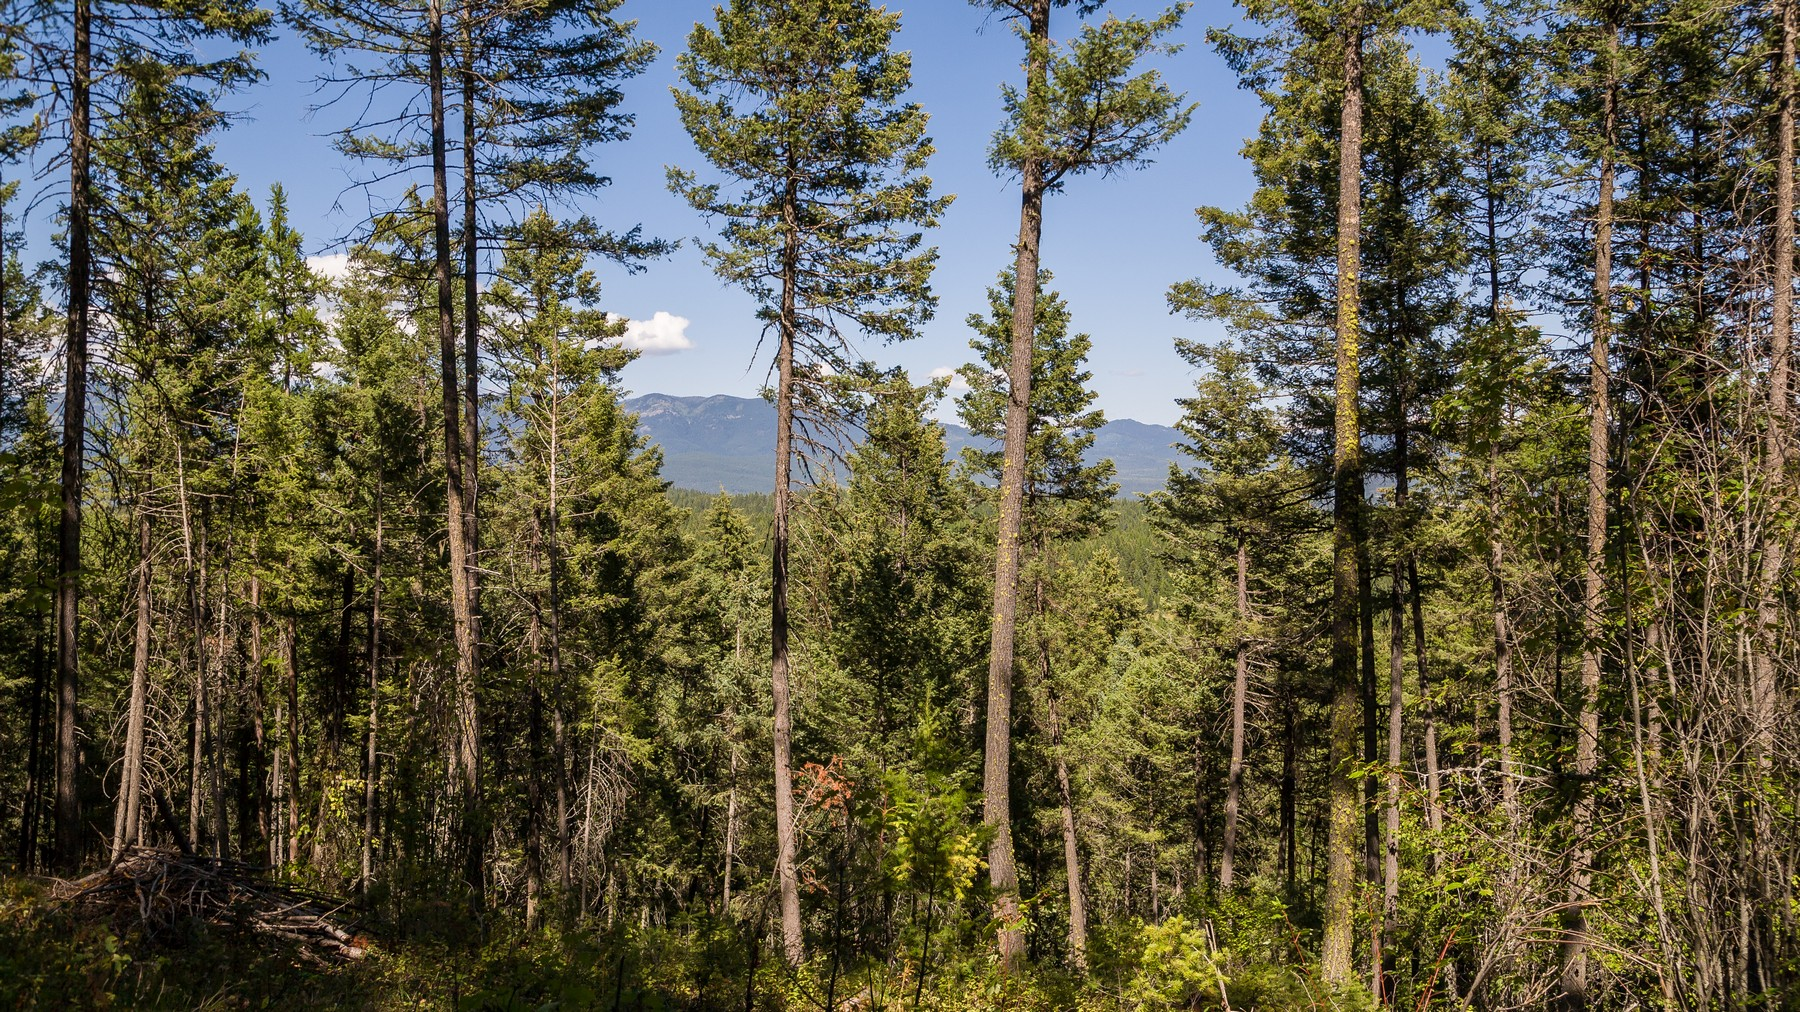 Additional photo for property listing at 747 Whitefish Ranch Rd , Whitefish, MT 59937 747  Whitefish Ranch Rd Whitefish, Montana 59937 United States